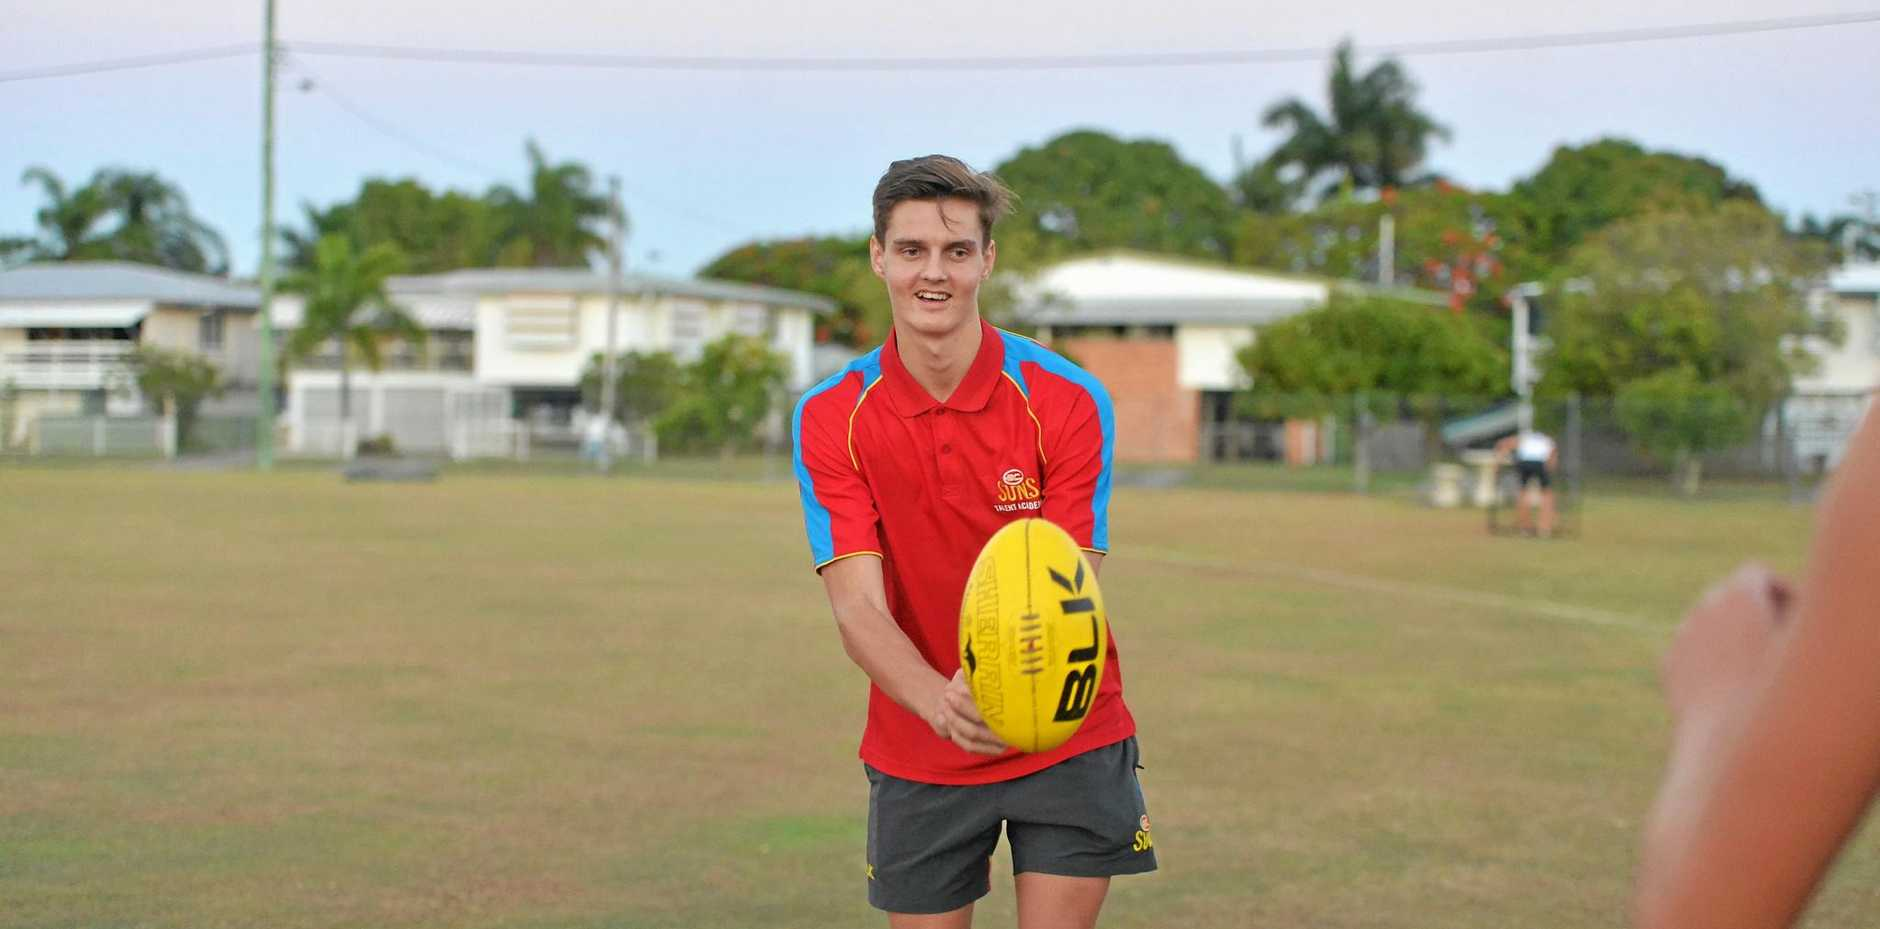 Eastern Swans junior Harry Arnold is aiming to have a consistent, injury-free year to make it into the Gold Coast Suns' draft.